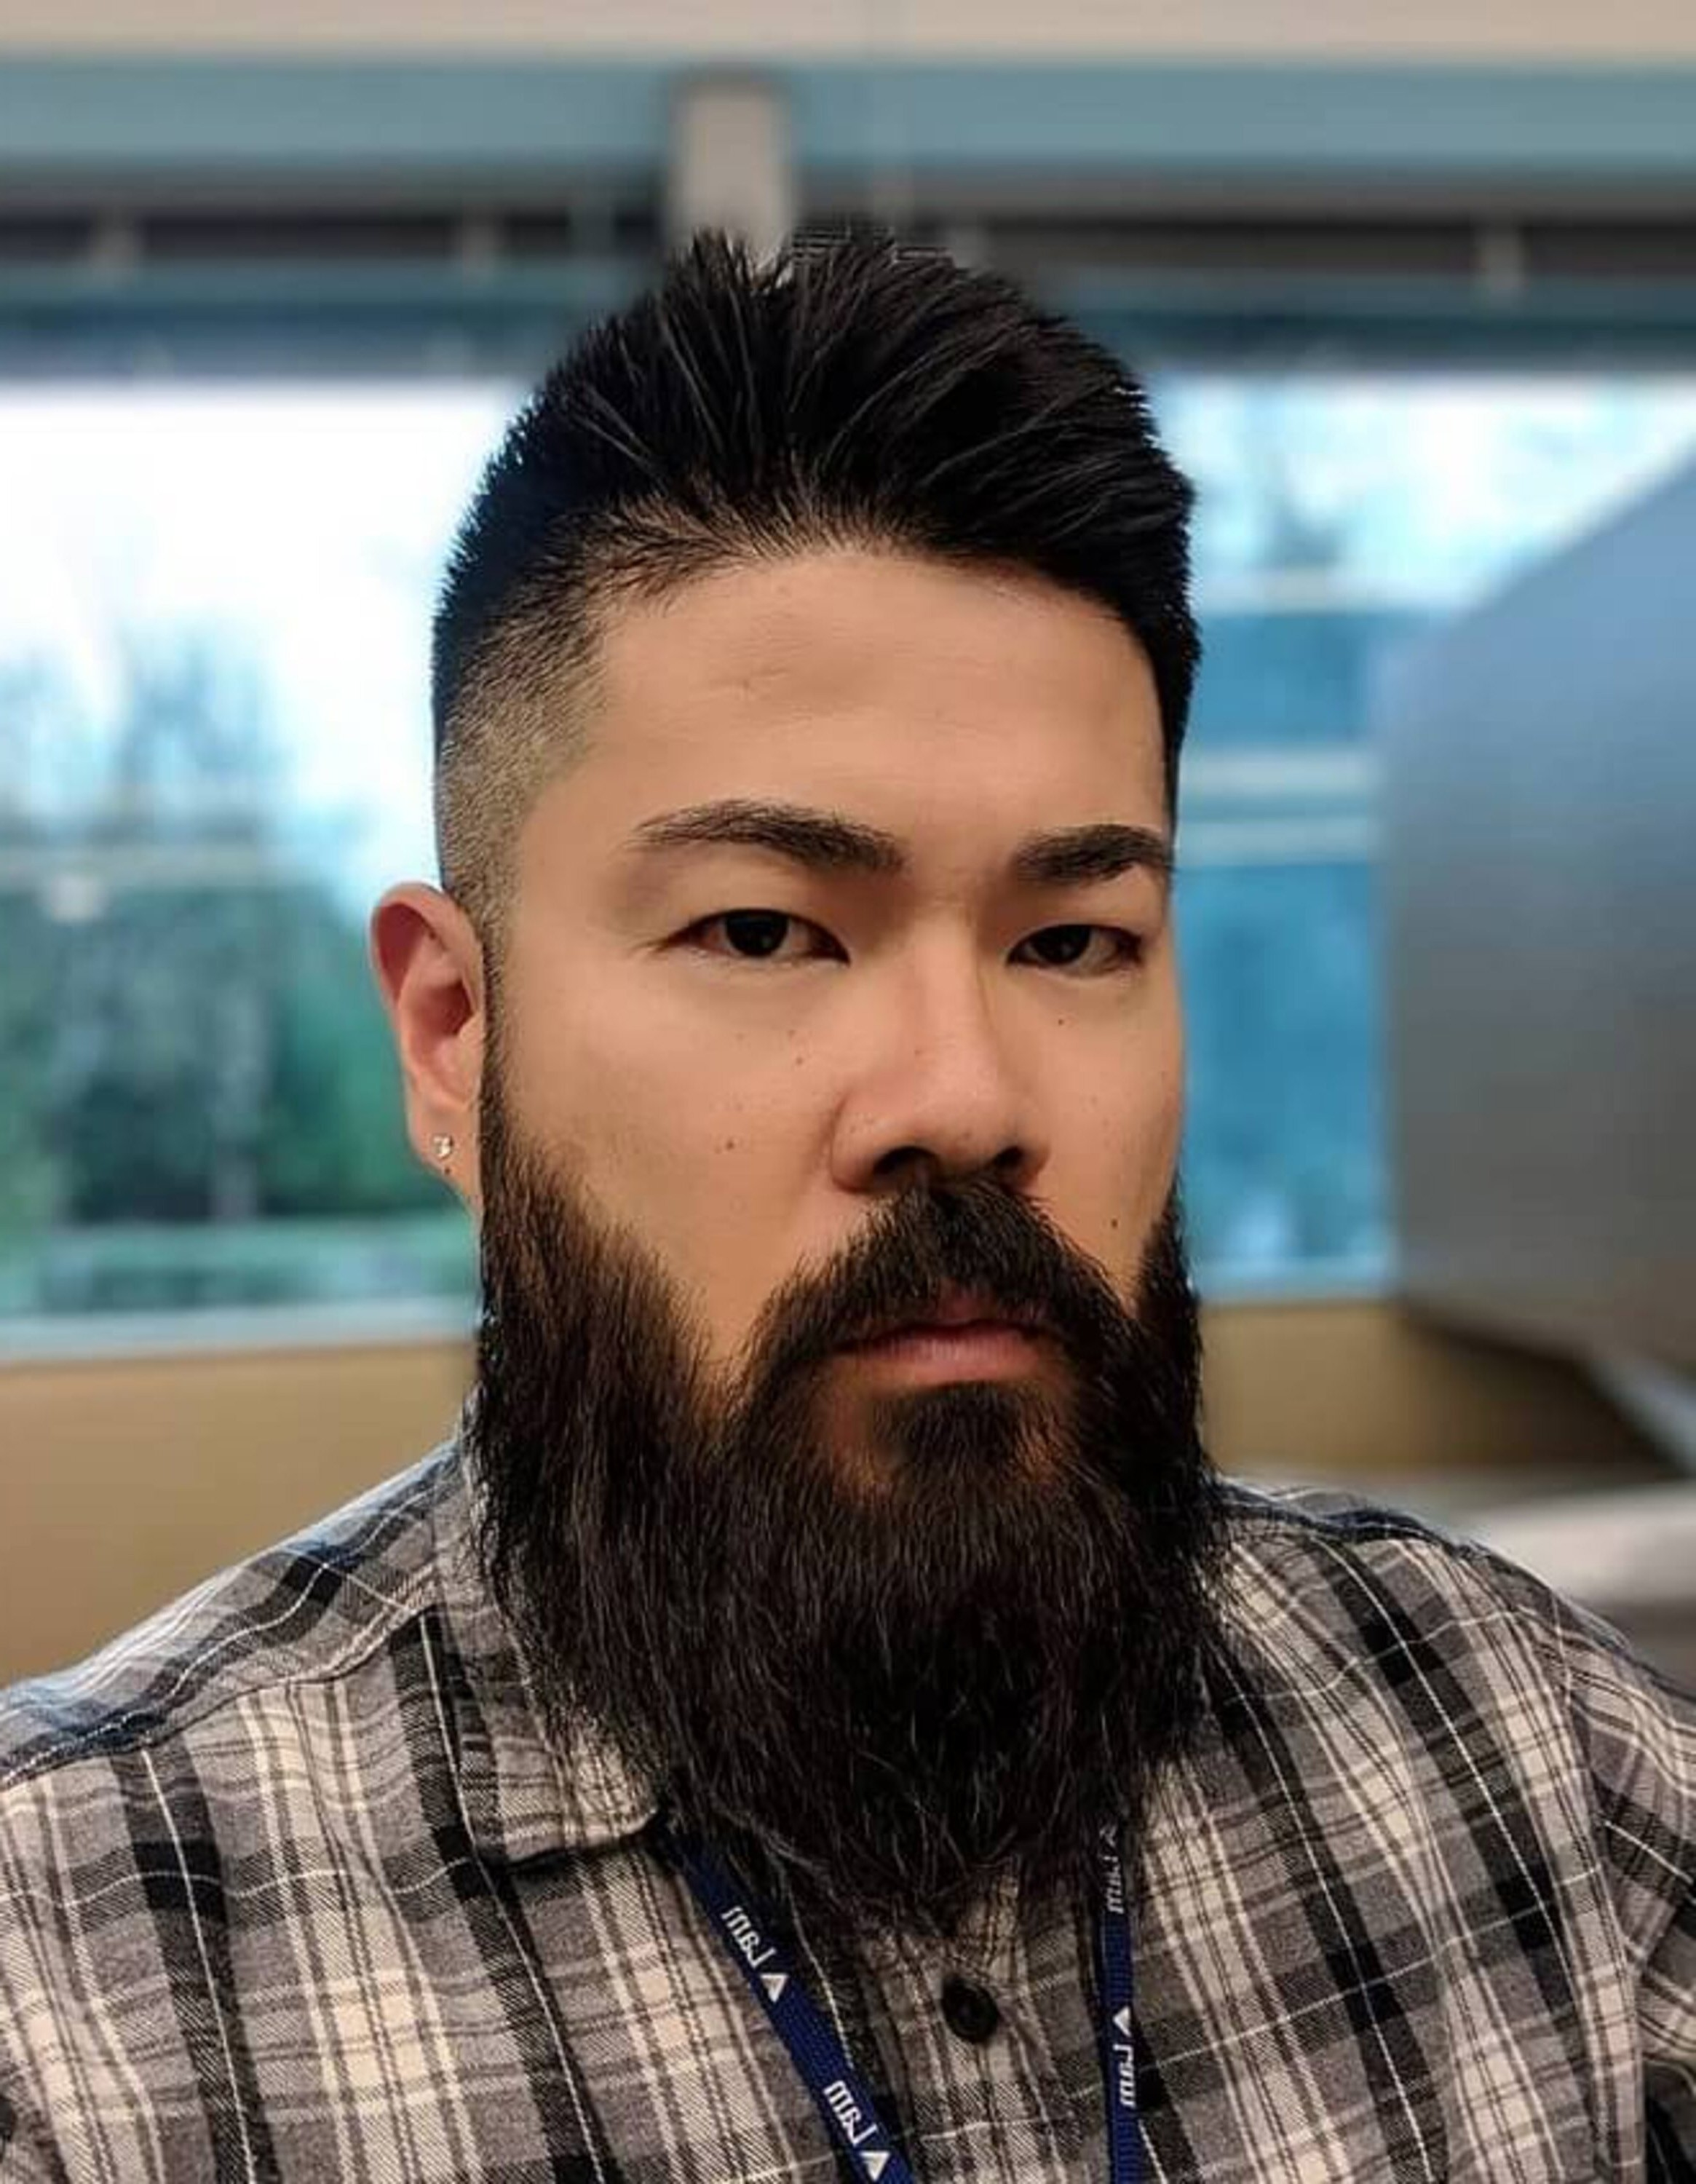 A full beard for Asian men.